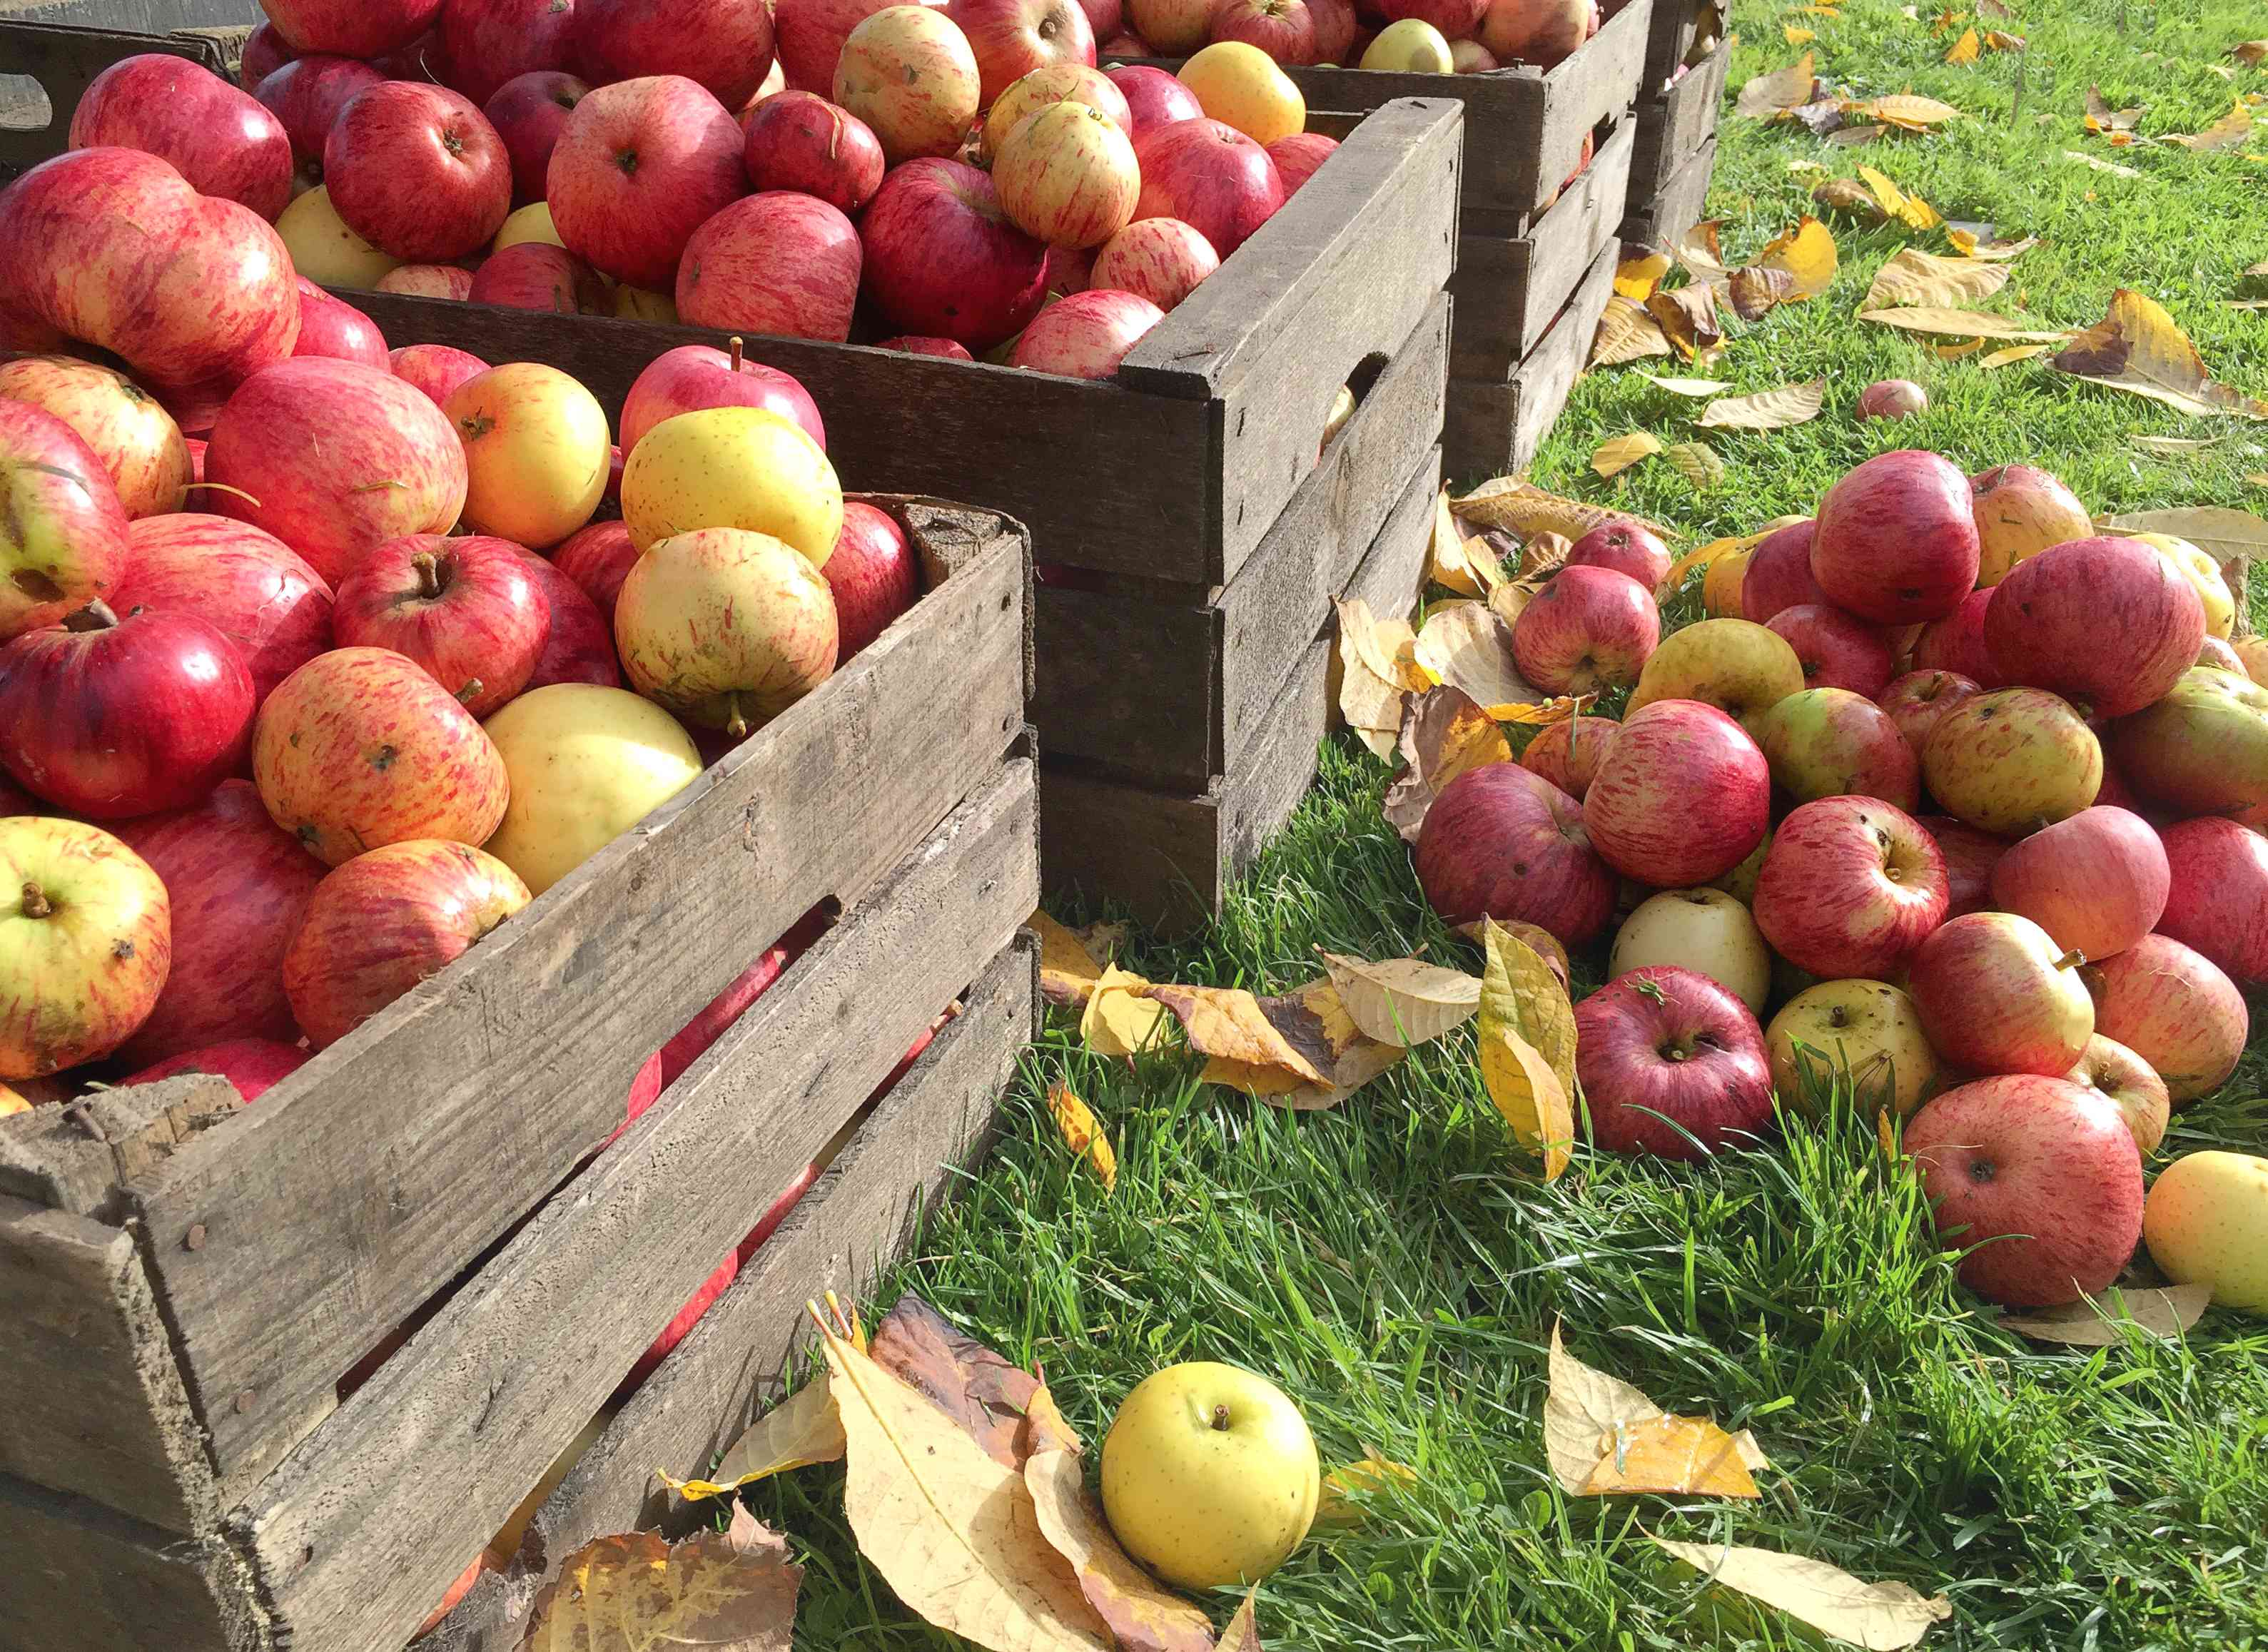 crates of fresh apples at an orchard